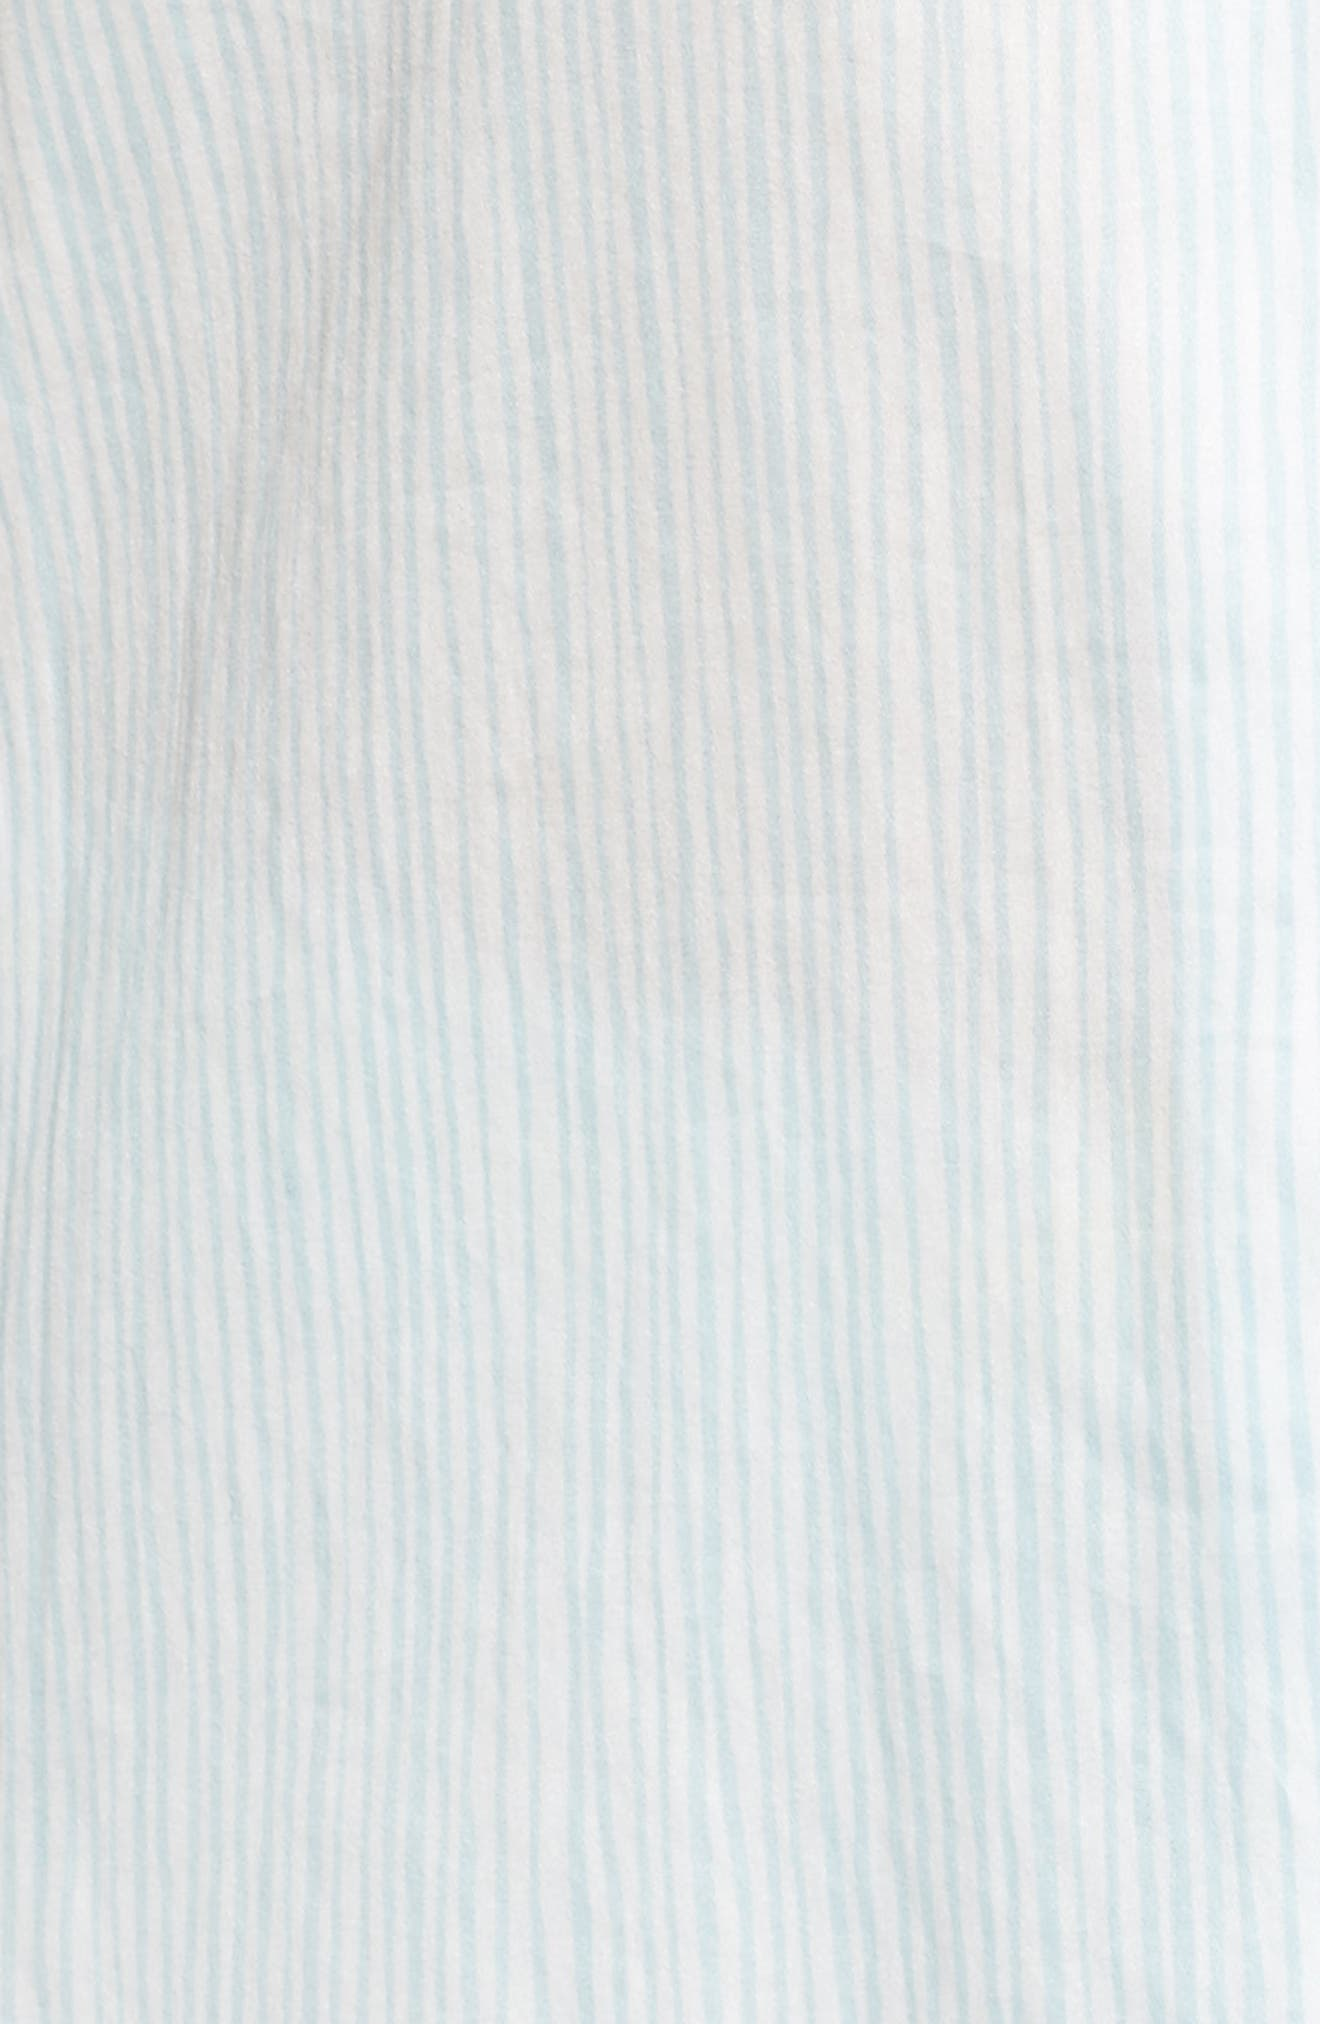 Suzie Pajamas,                             Alternate thumbnail 6, color,                             Pencil Stripe Seafoam